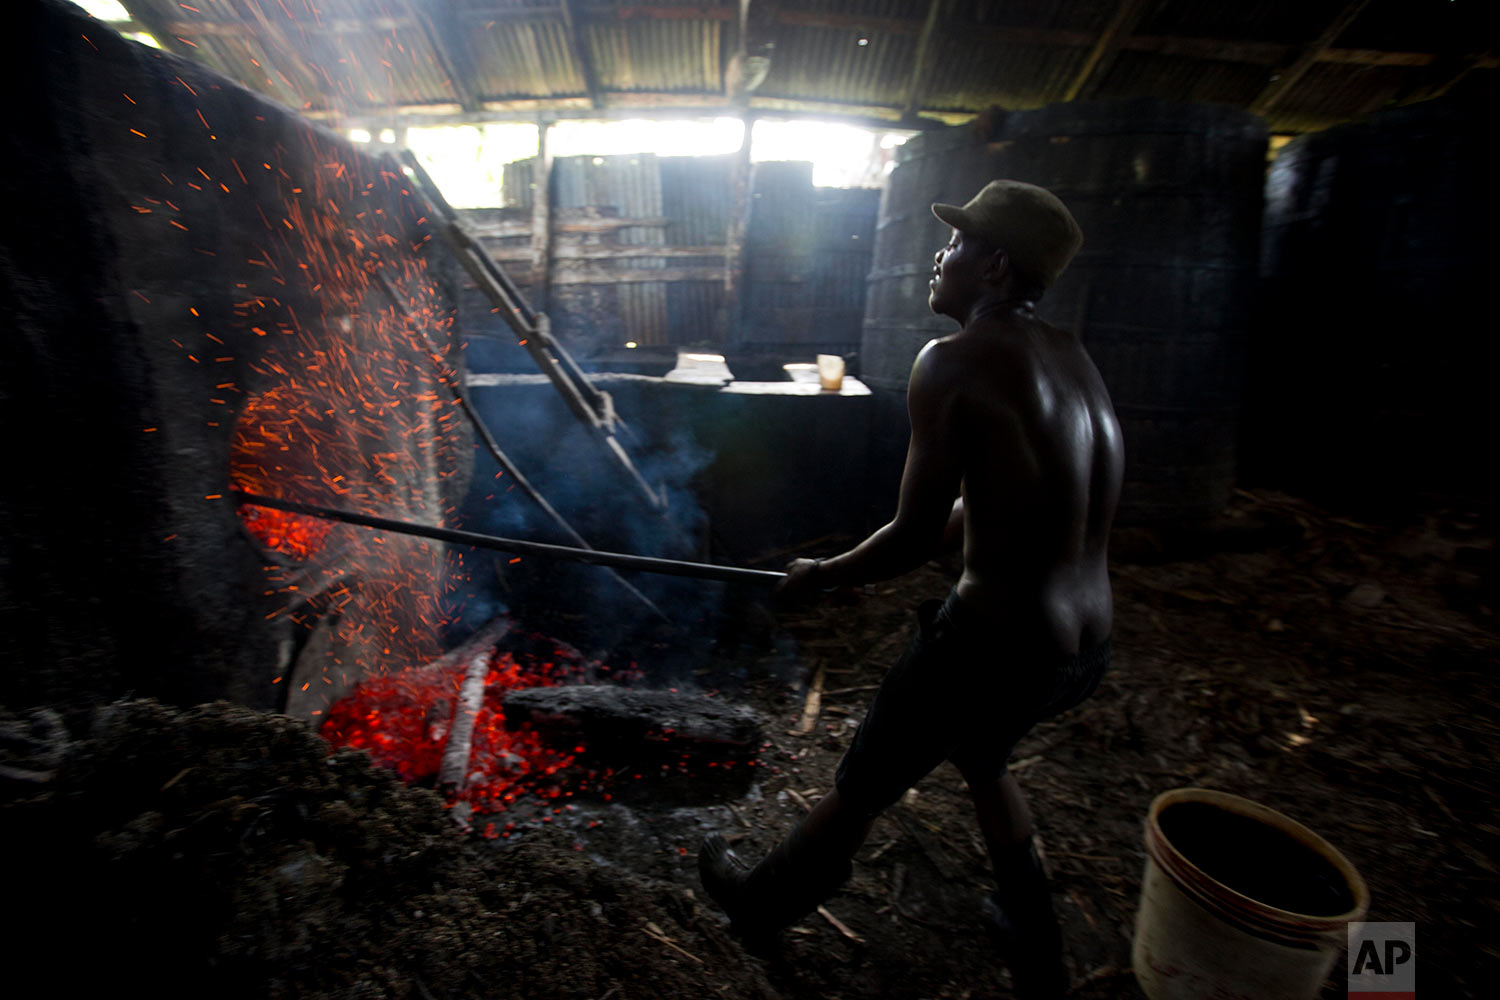 Batel Delciner, 23, removes wood from a furnace to lower the heat that cooks sugar juice at the Ti Jean distillery, which produces clairin, a sugar-based alcoholic drink, in Leogane, Haiti, Friday, June 16, 2017. The broth is cooked for about four hours after a fermentation period of four to eight days. (AP Photo/Dieu Nalio Chery)